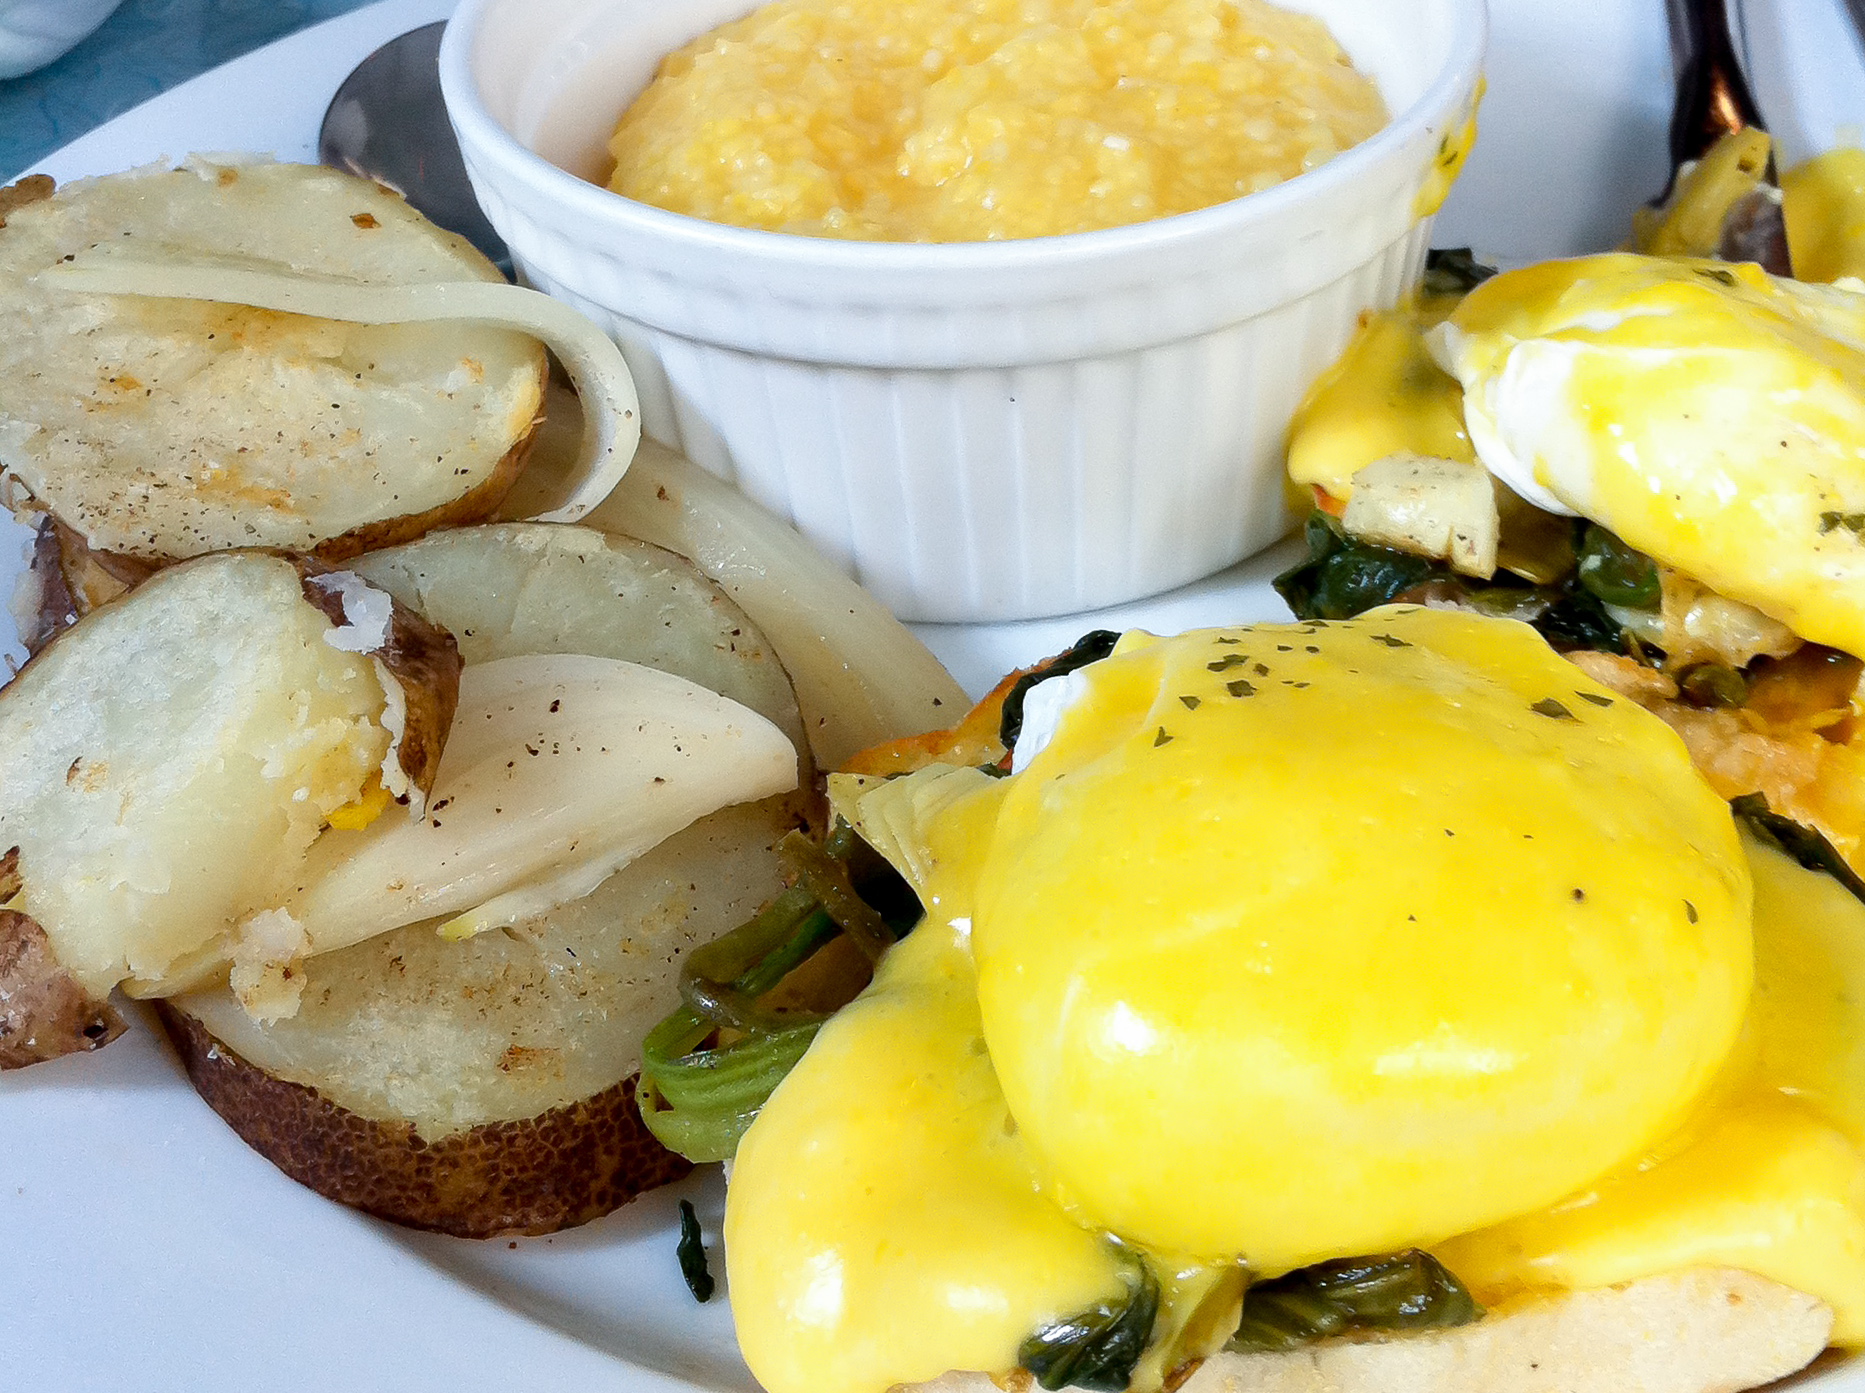 Eggs benedict and grits at The Flying Pan in Hong Kong. Photo by alphacityguides.